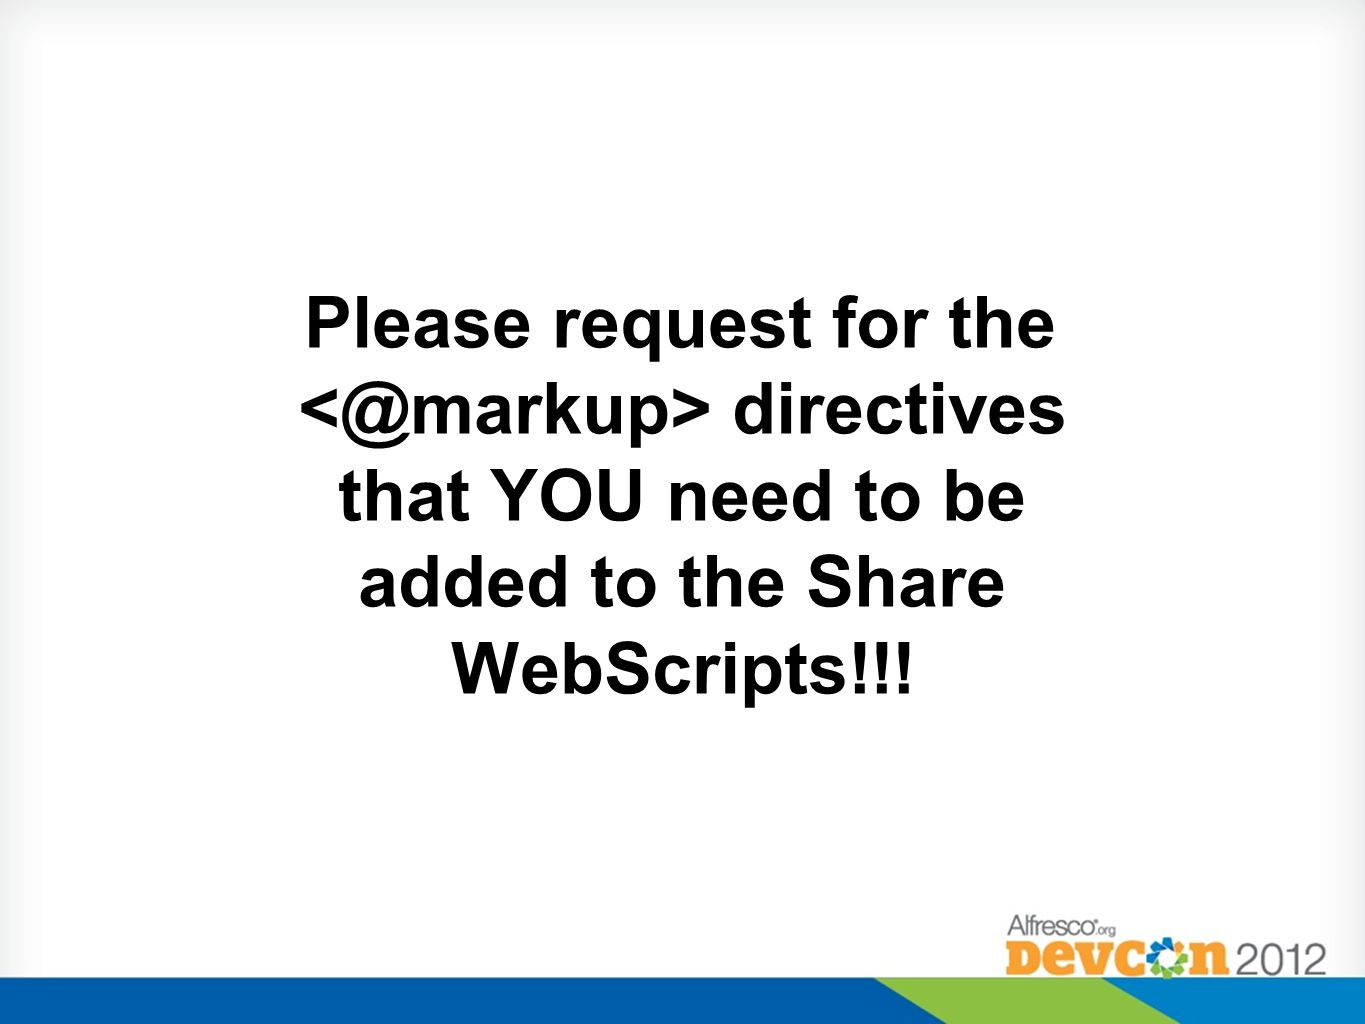 Please request for the directives that YOU need to be added to the Share WebScripts!!!